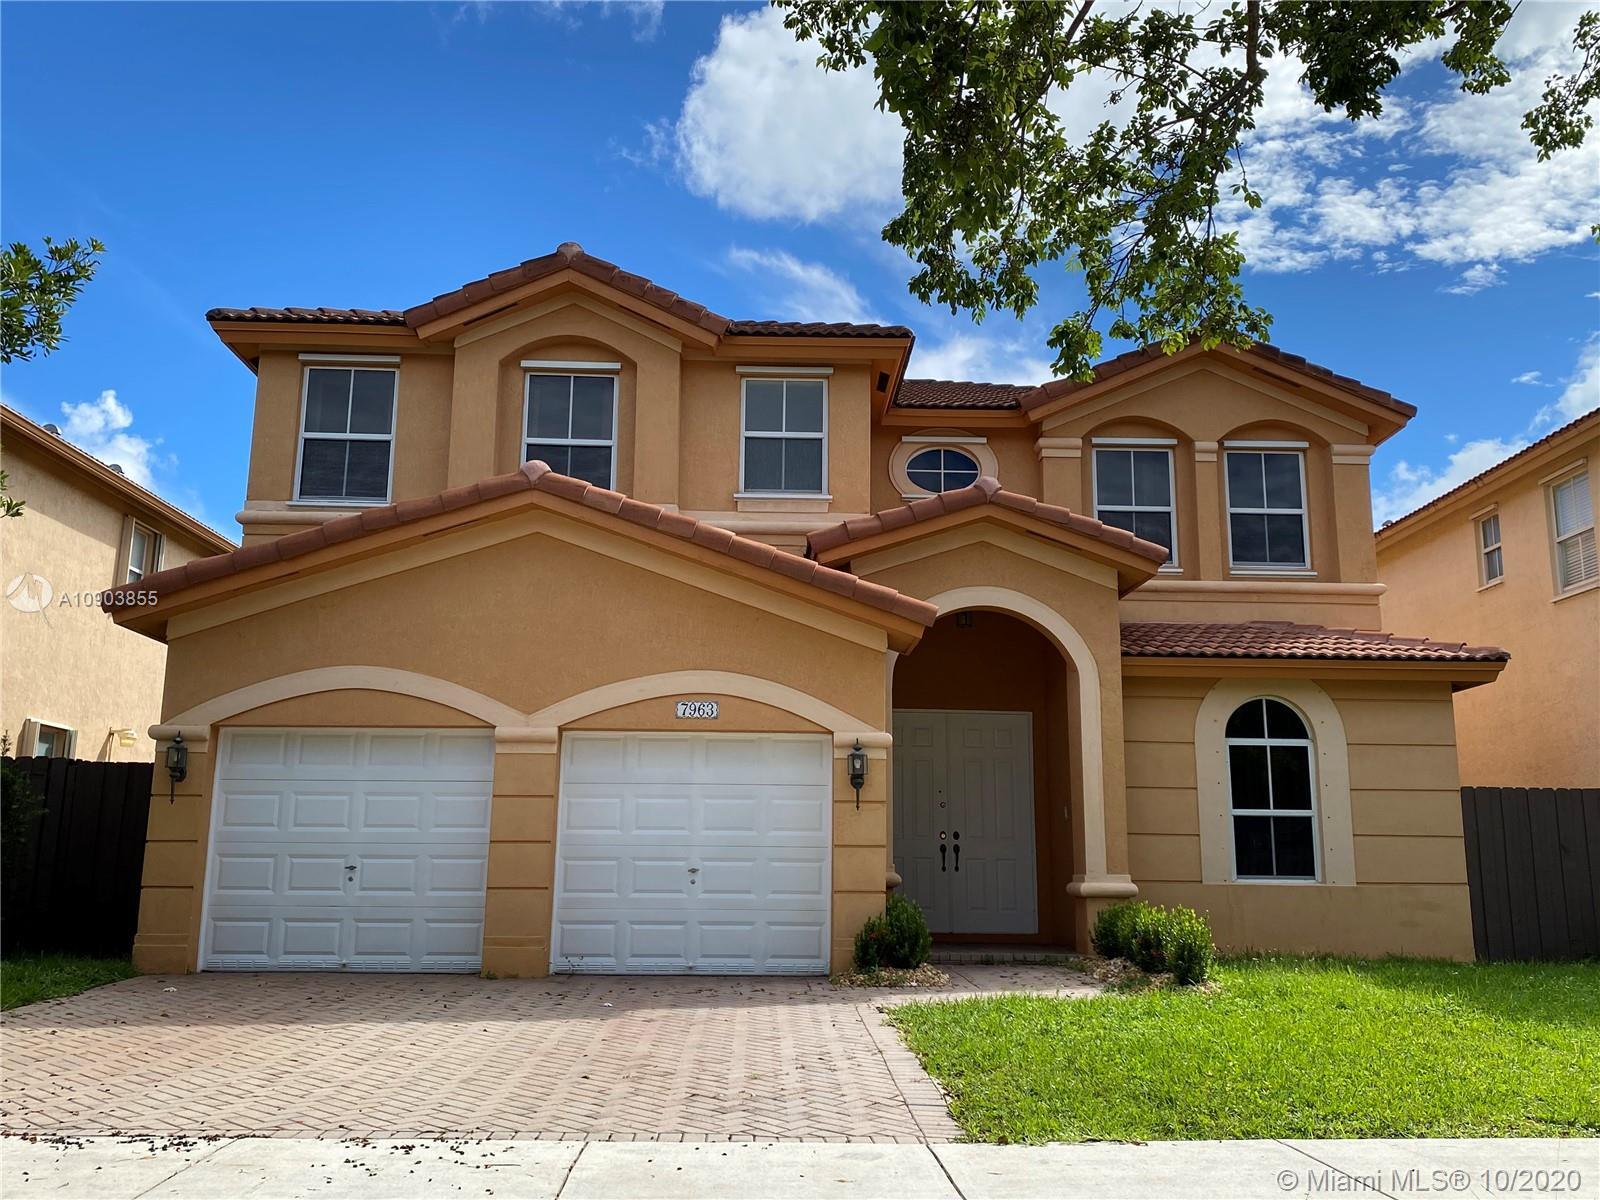 Islands At Doral - 7963 NW 111th Ct, Doral, FL 33178